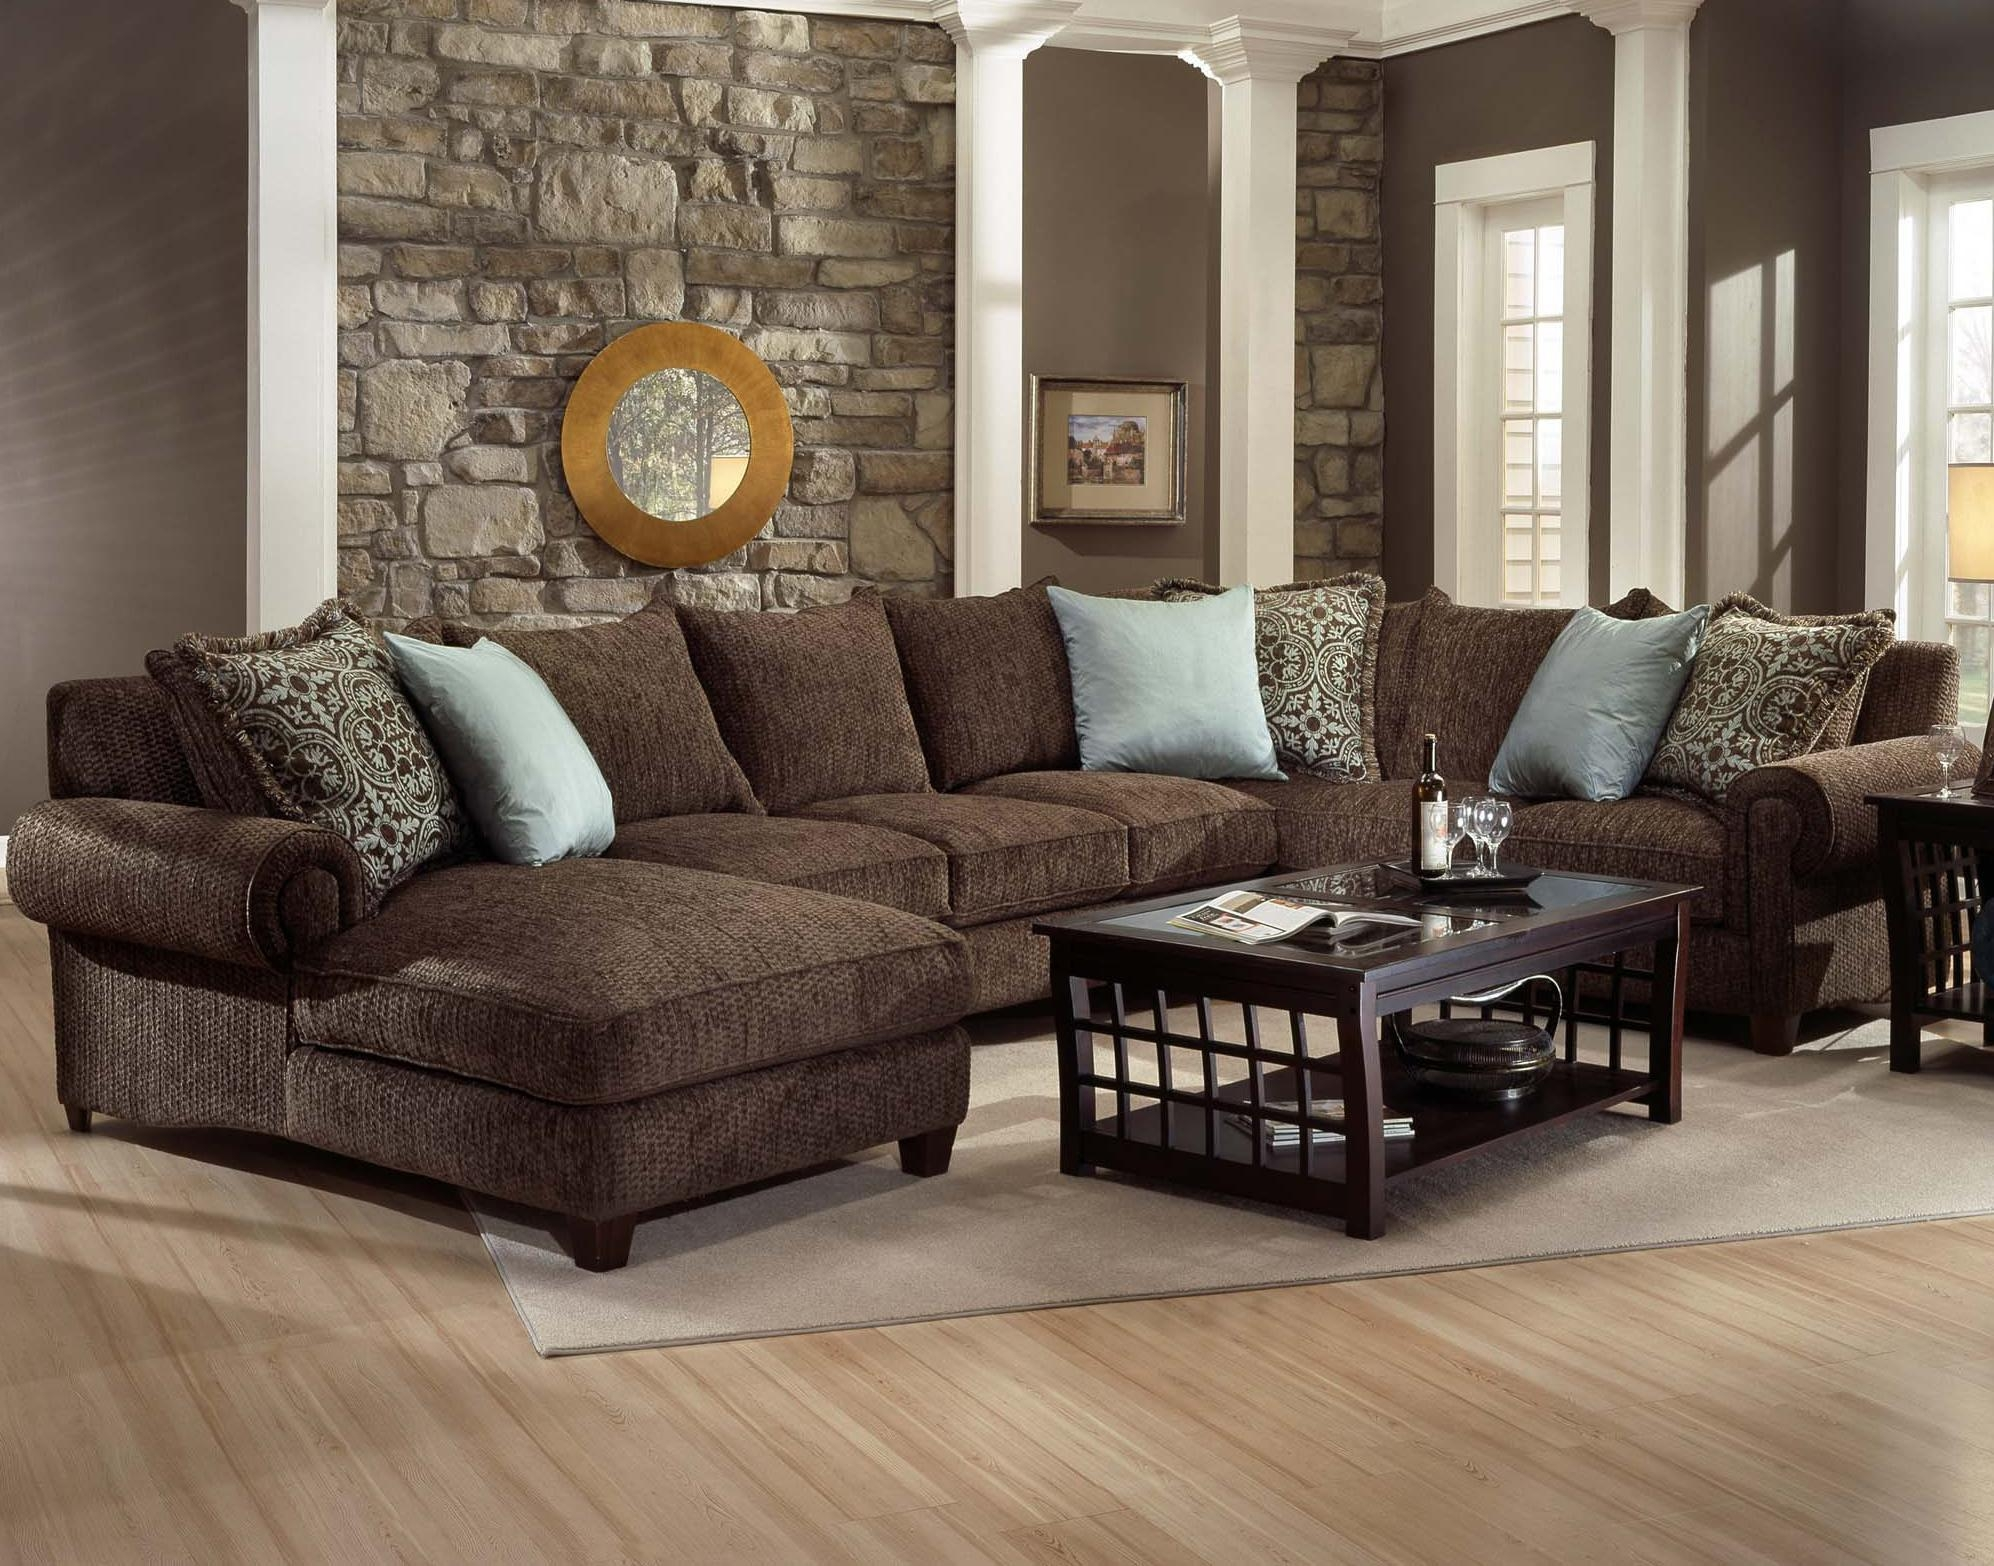 Decor: Artificial Classic Corduroy Sectional Sofa For Unique With Deep Sectionals (Image 2 of 15)